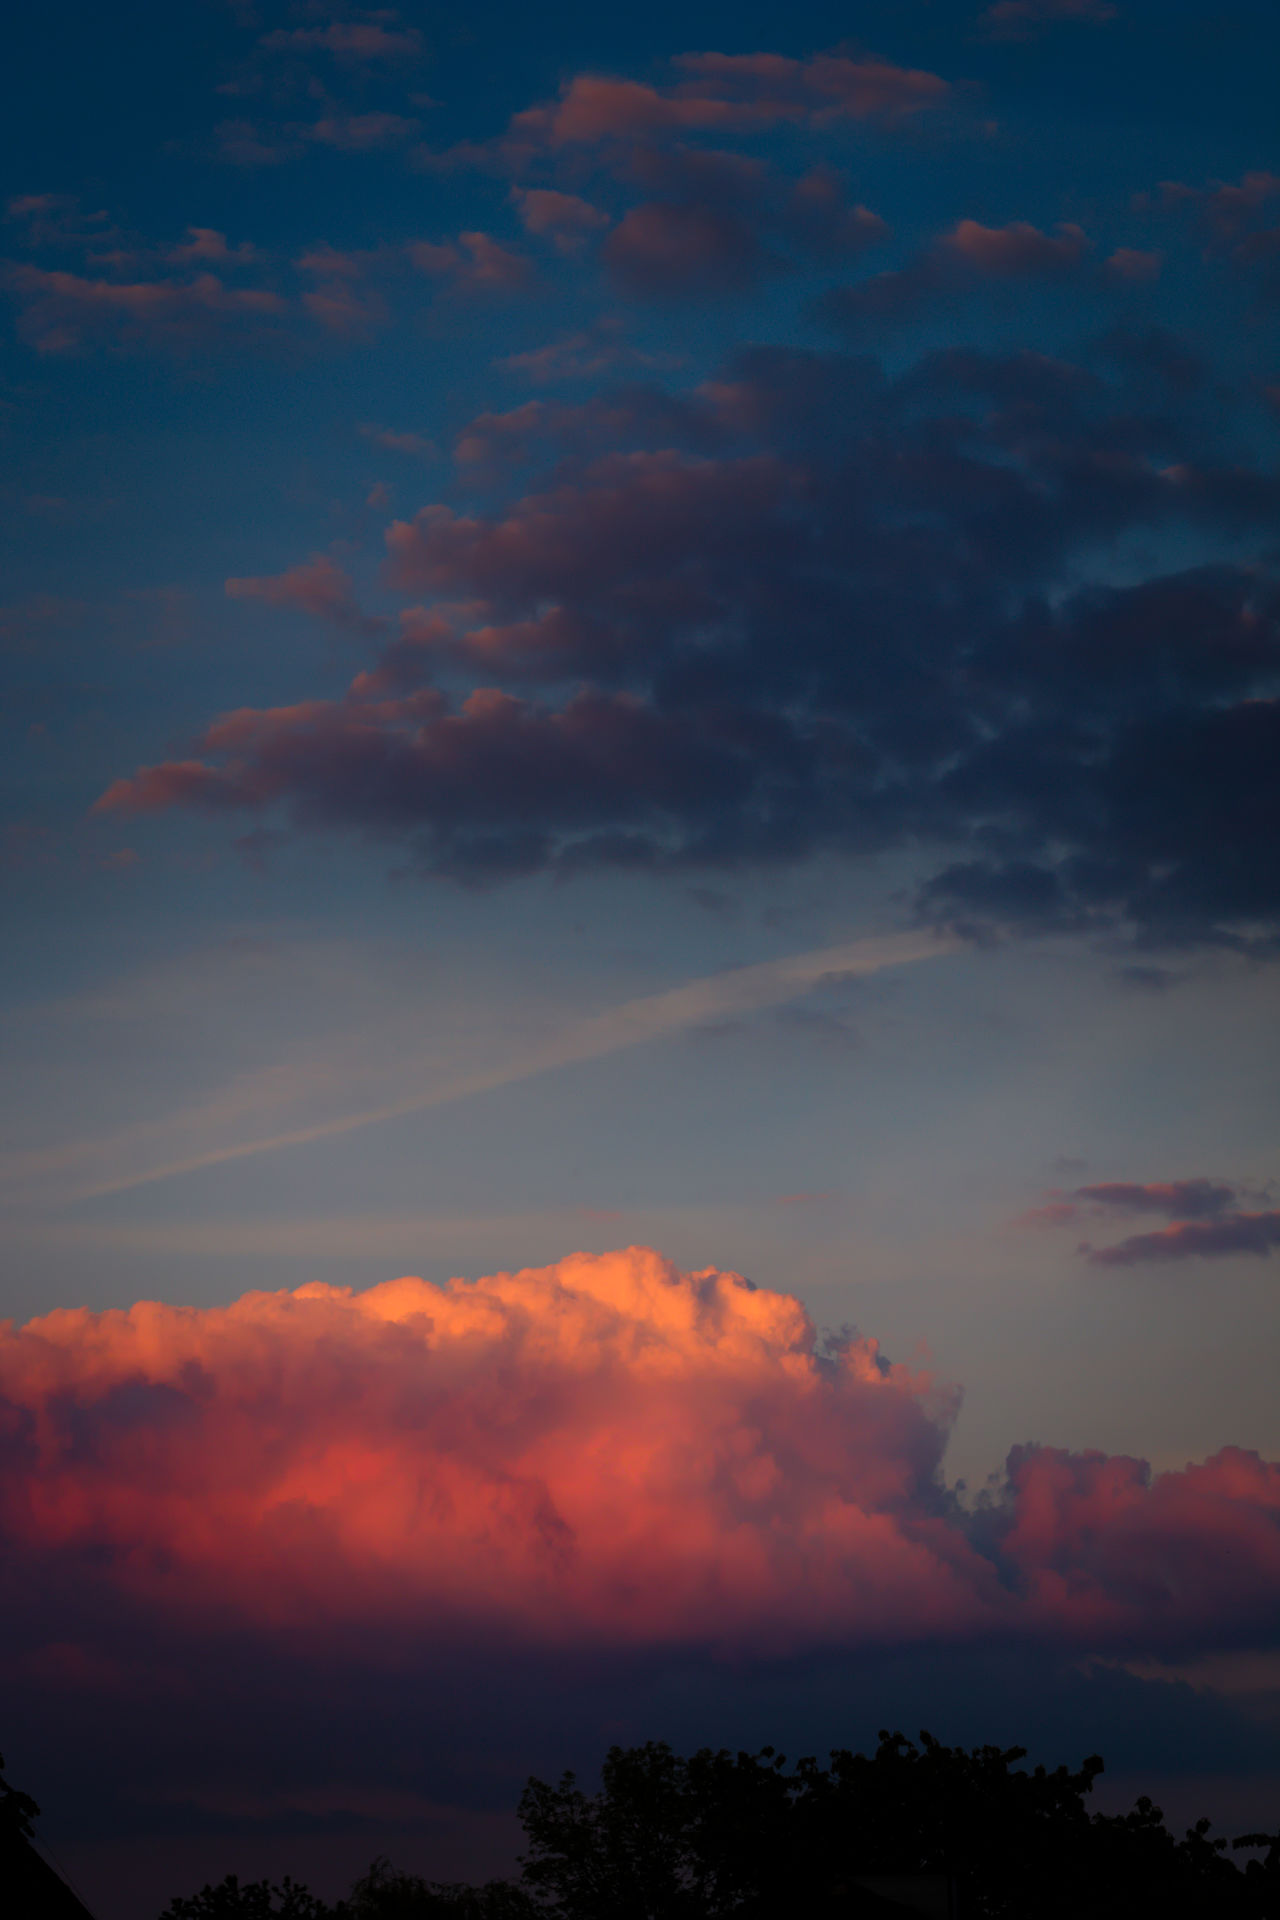 Beauty In Nature Cloud Cloud - Sky Dramatic Sky Enjoying Life Eye4photography  EyeEm Best Shots EyeEm Gallery EyeEm Nature Lover Low Angle View Nature No People Orange Color Outdoors Scenics Silhouette Sky Sky And Clouds Sky Only Sunset Taking Photos Tranquil Scene Tranquility